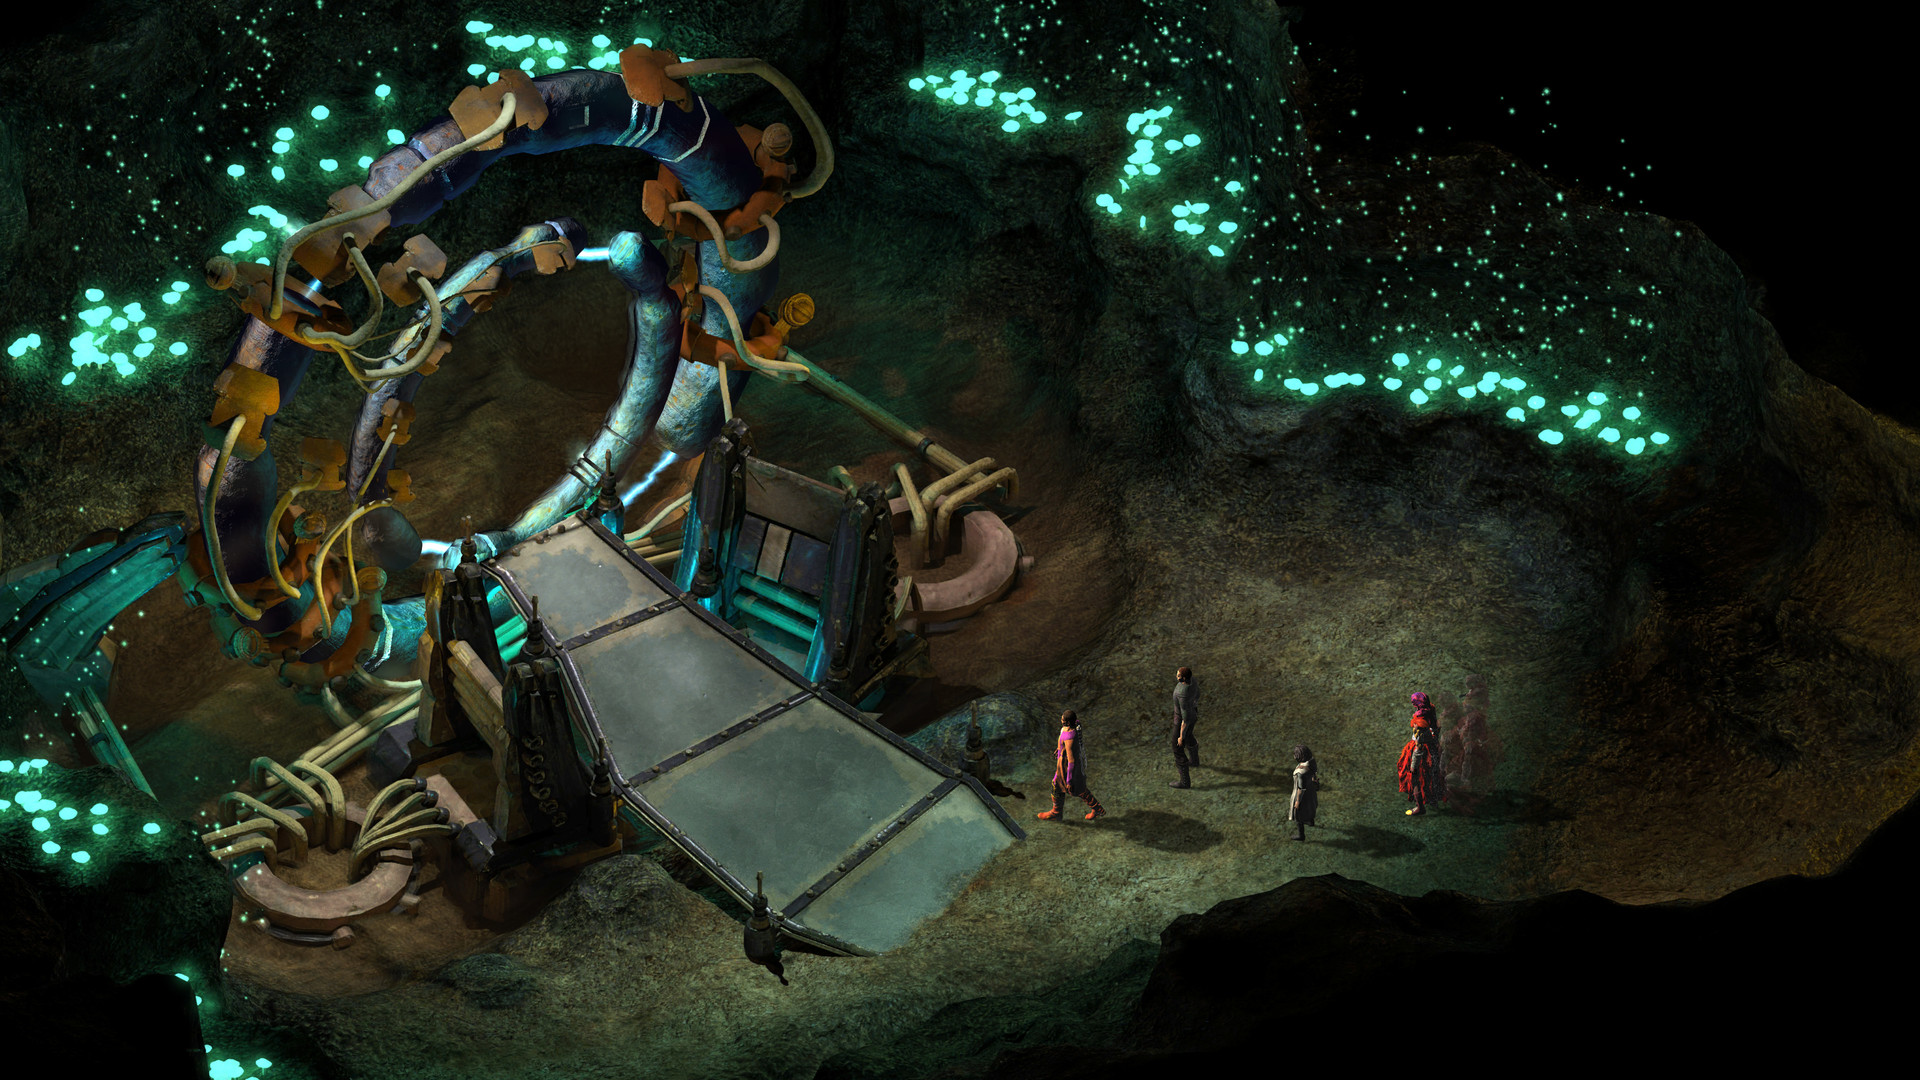 Torment: Tides of Numenera (Steam Key RU / CIS)